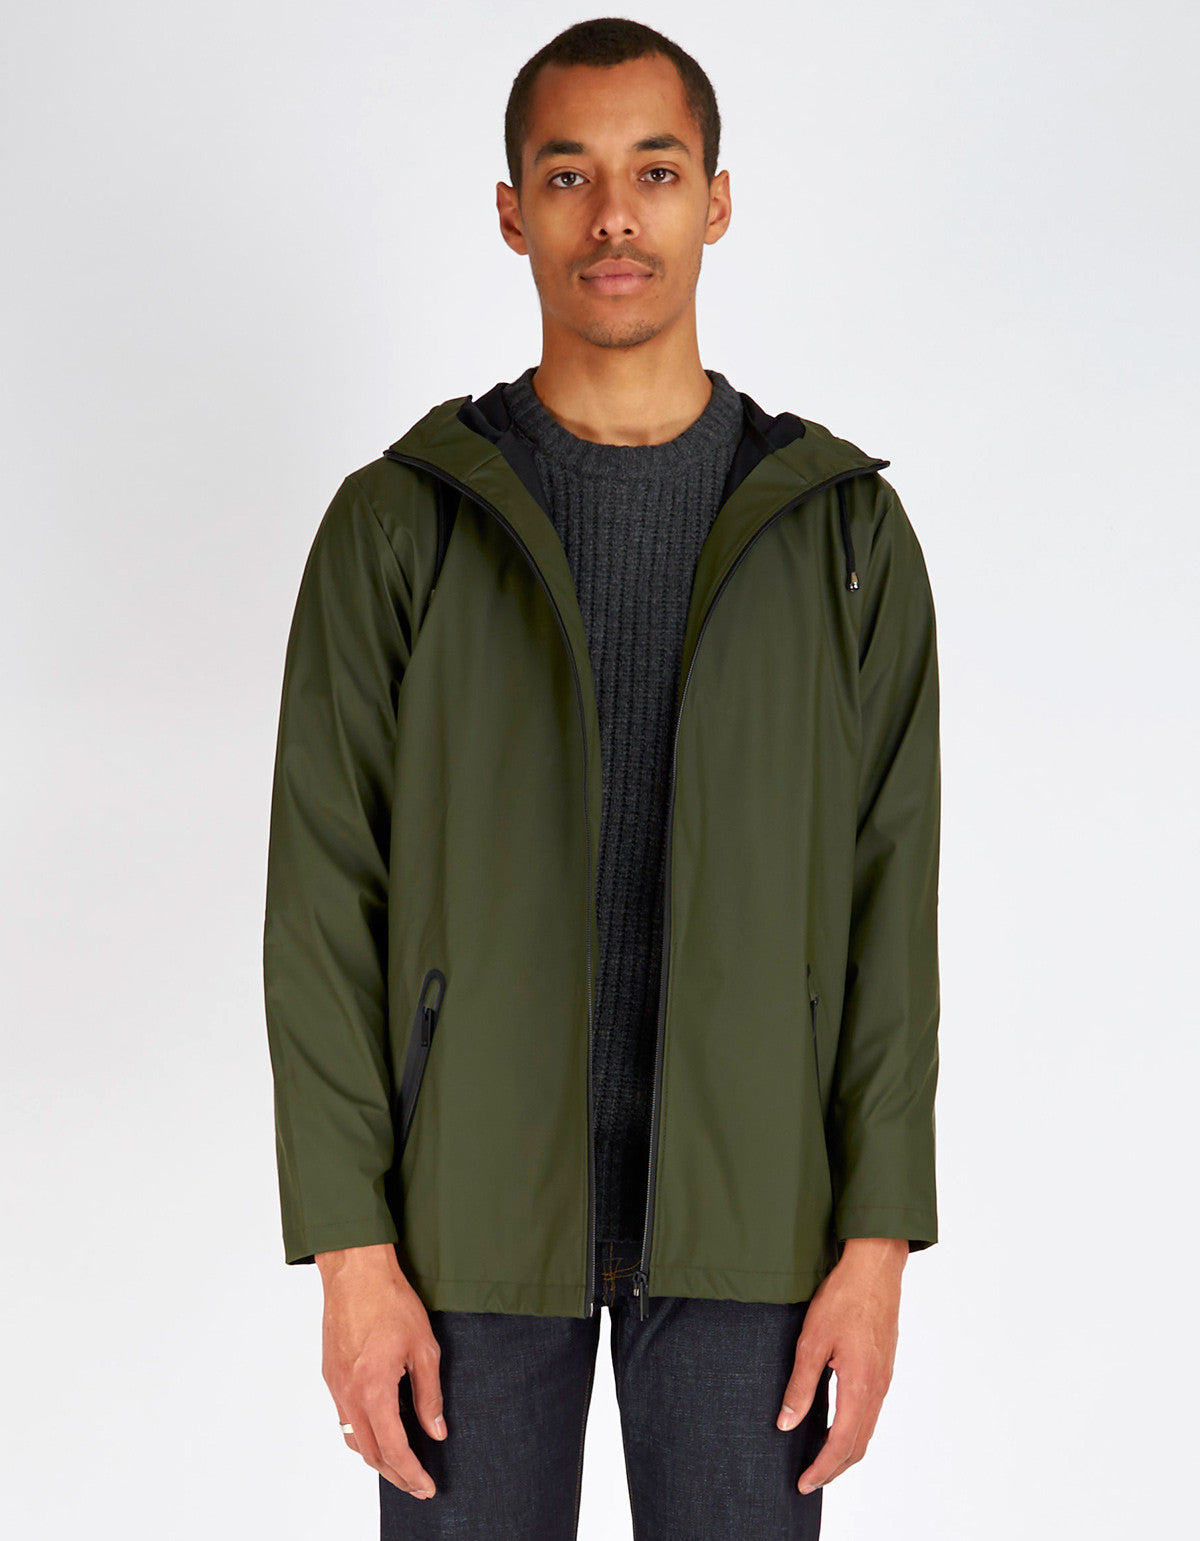 Rains Breaker Jacket Men's Green - Still Life - 1